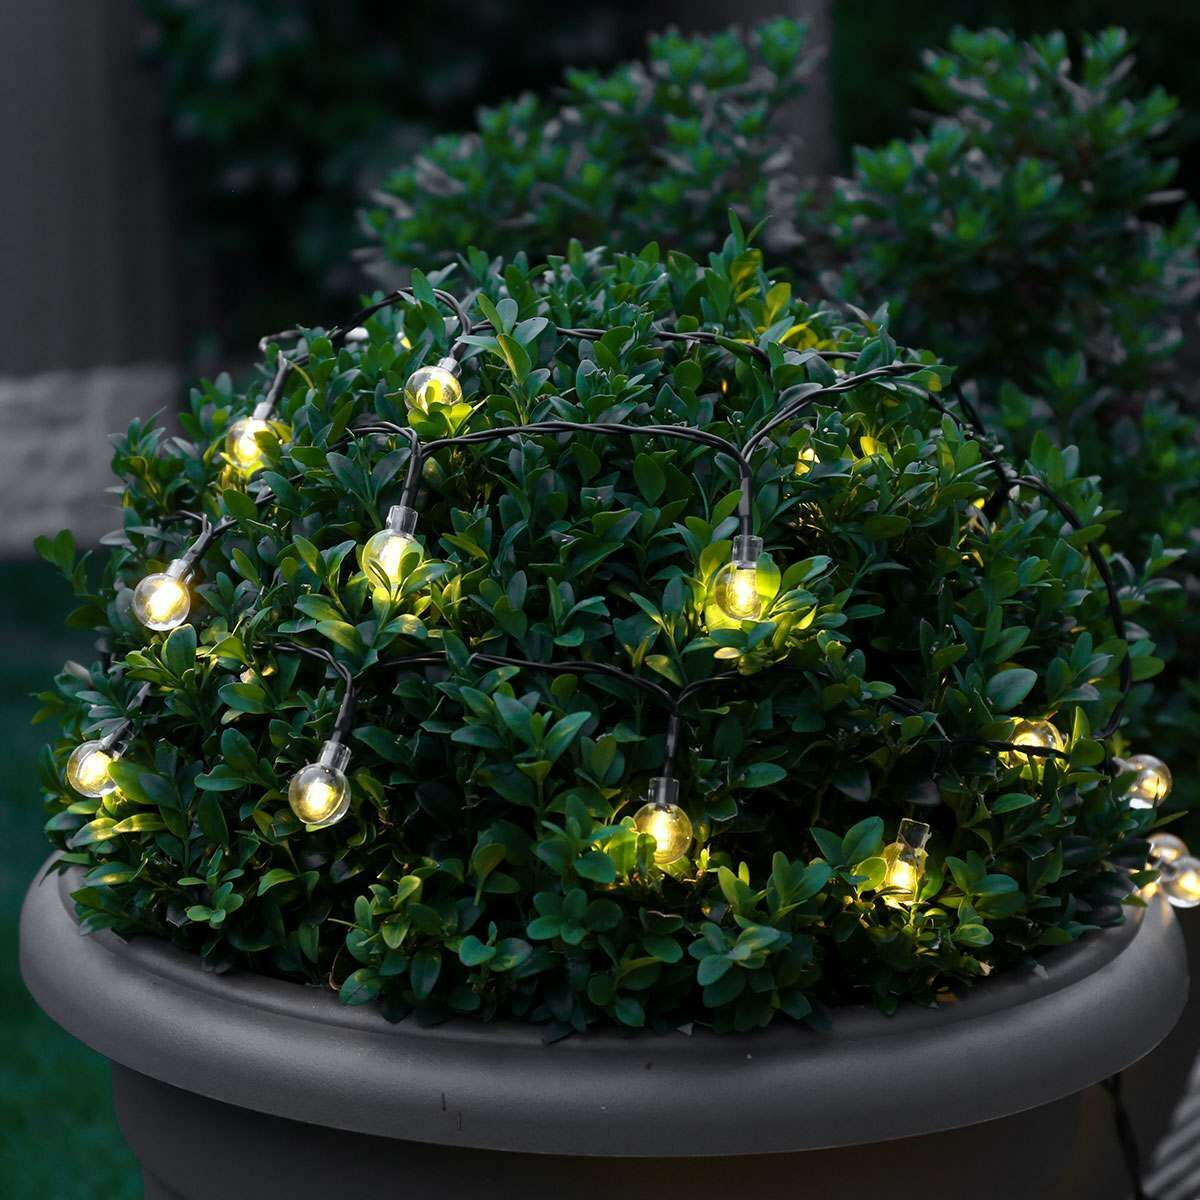 5m Outdoor Battery Clear Berry Fairy Lights, Warm White LEDs, Green Cable